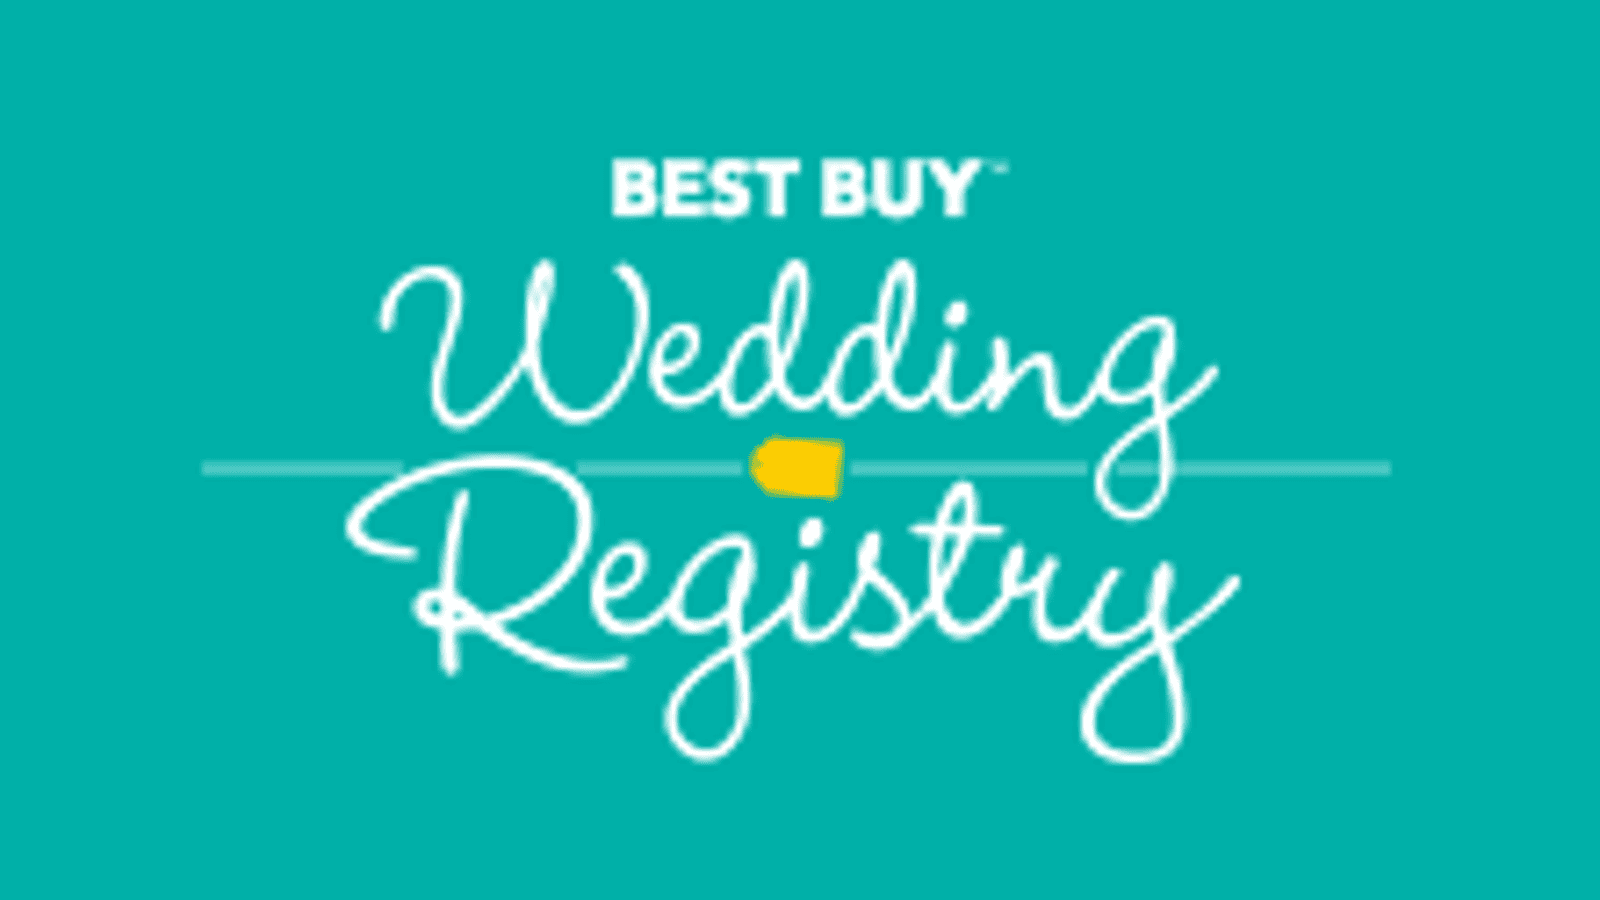 Beware the best buy wedding registry lest you look like an asshole junglespirit Images